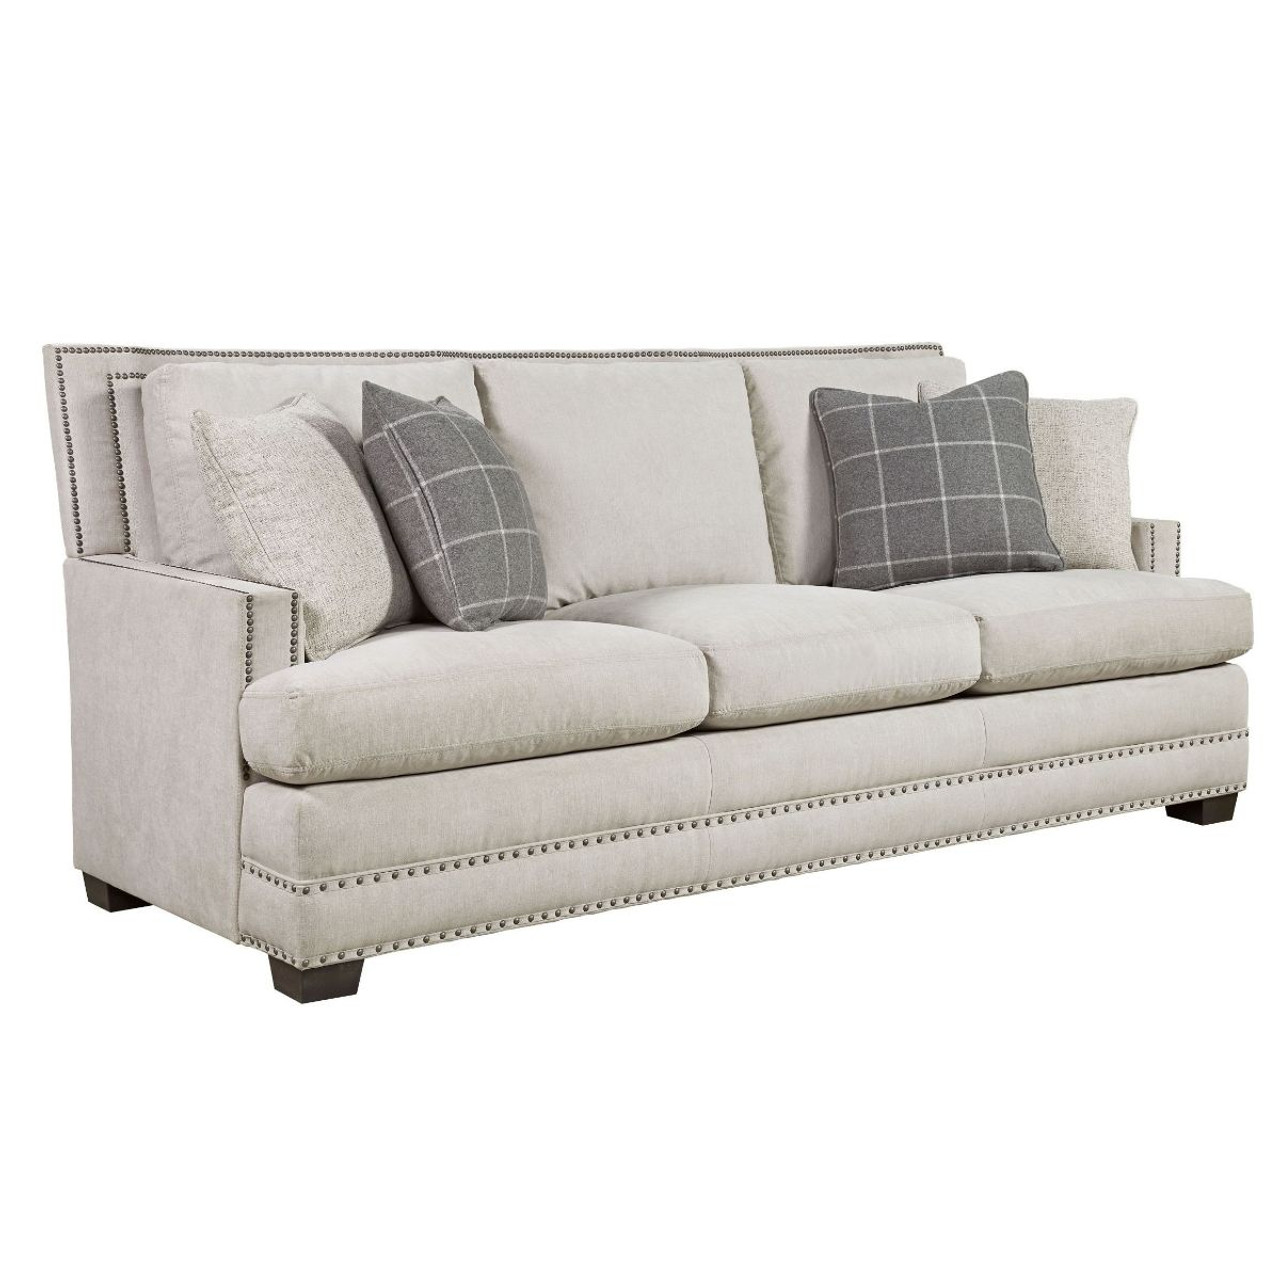 Franklin Upholstered 3-Seat Sofa with Nailheads